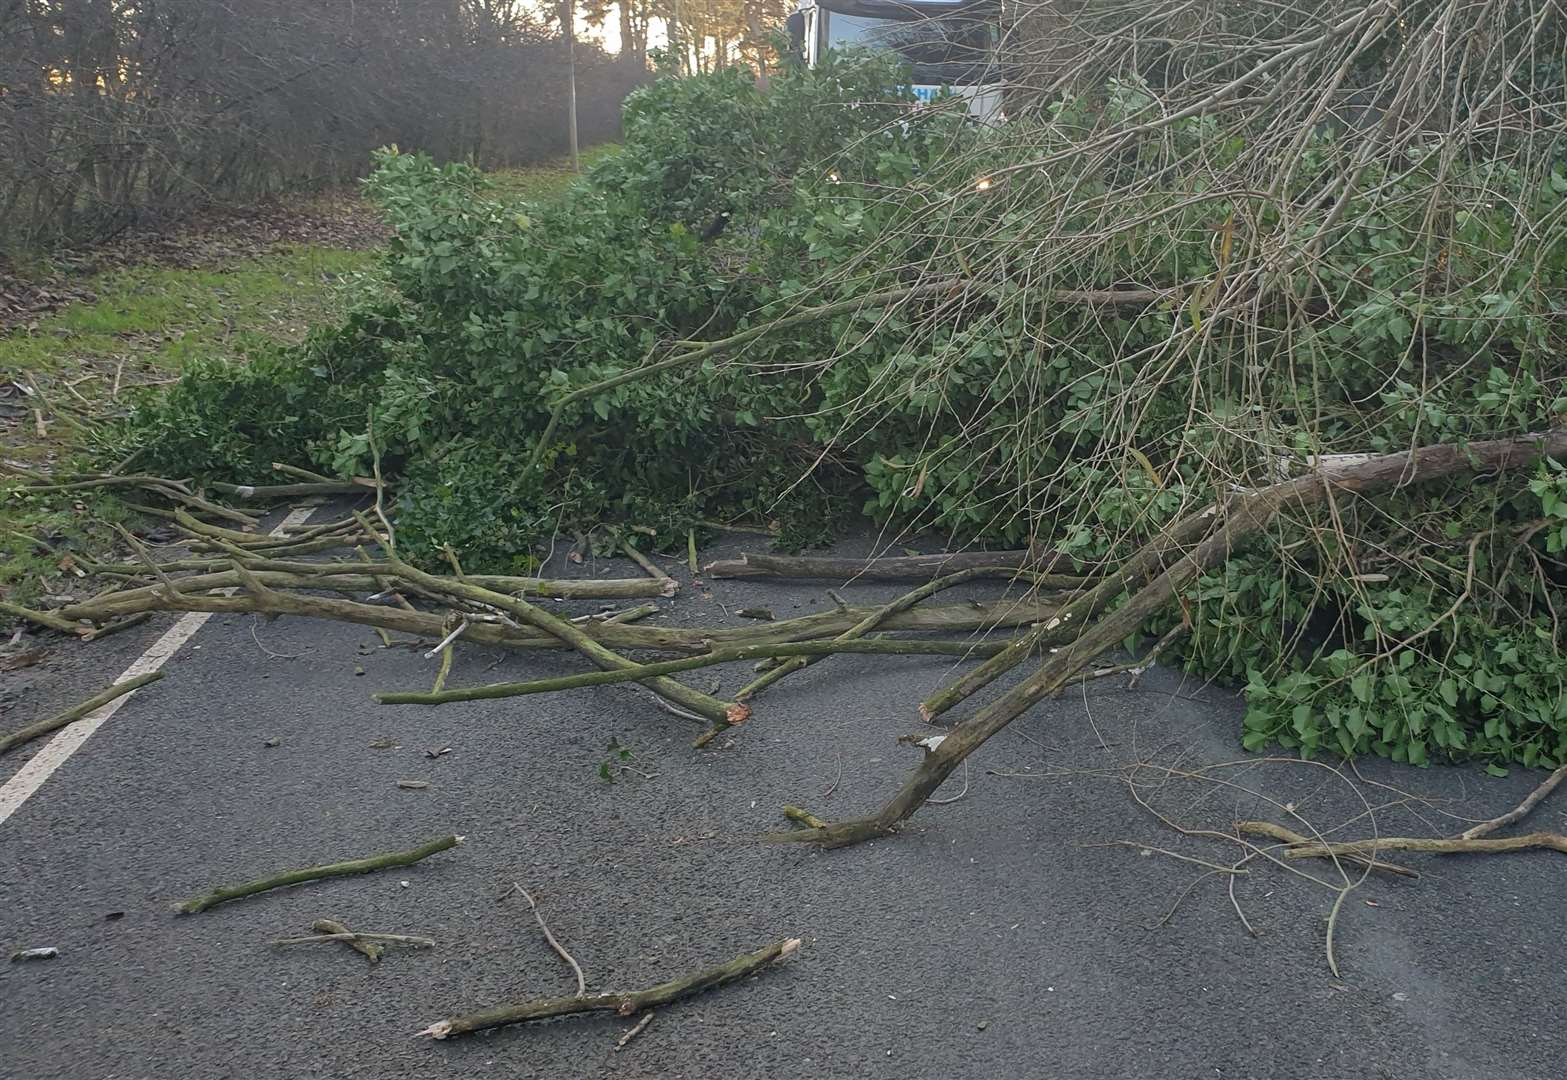 Lucky escape for motorist as tree falls across Grantham road